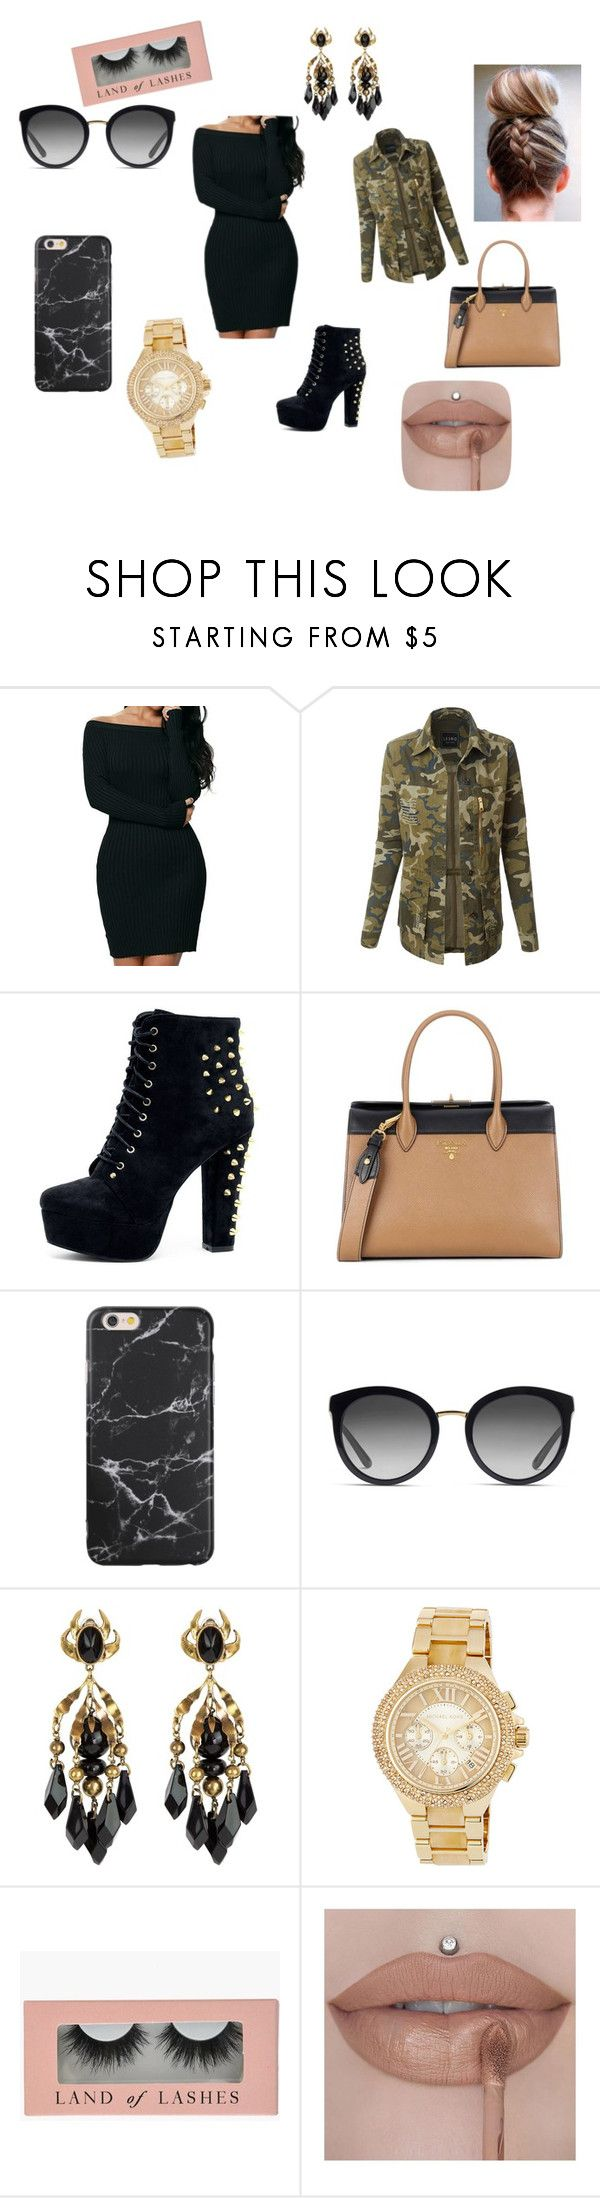 """""""Untitled #6"""" by vanessa-blomerus on Polyvore featuring LE3NO, Prada, Dolce&Gabbana, Gucci and MICHAEL Michael Kors"""